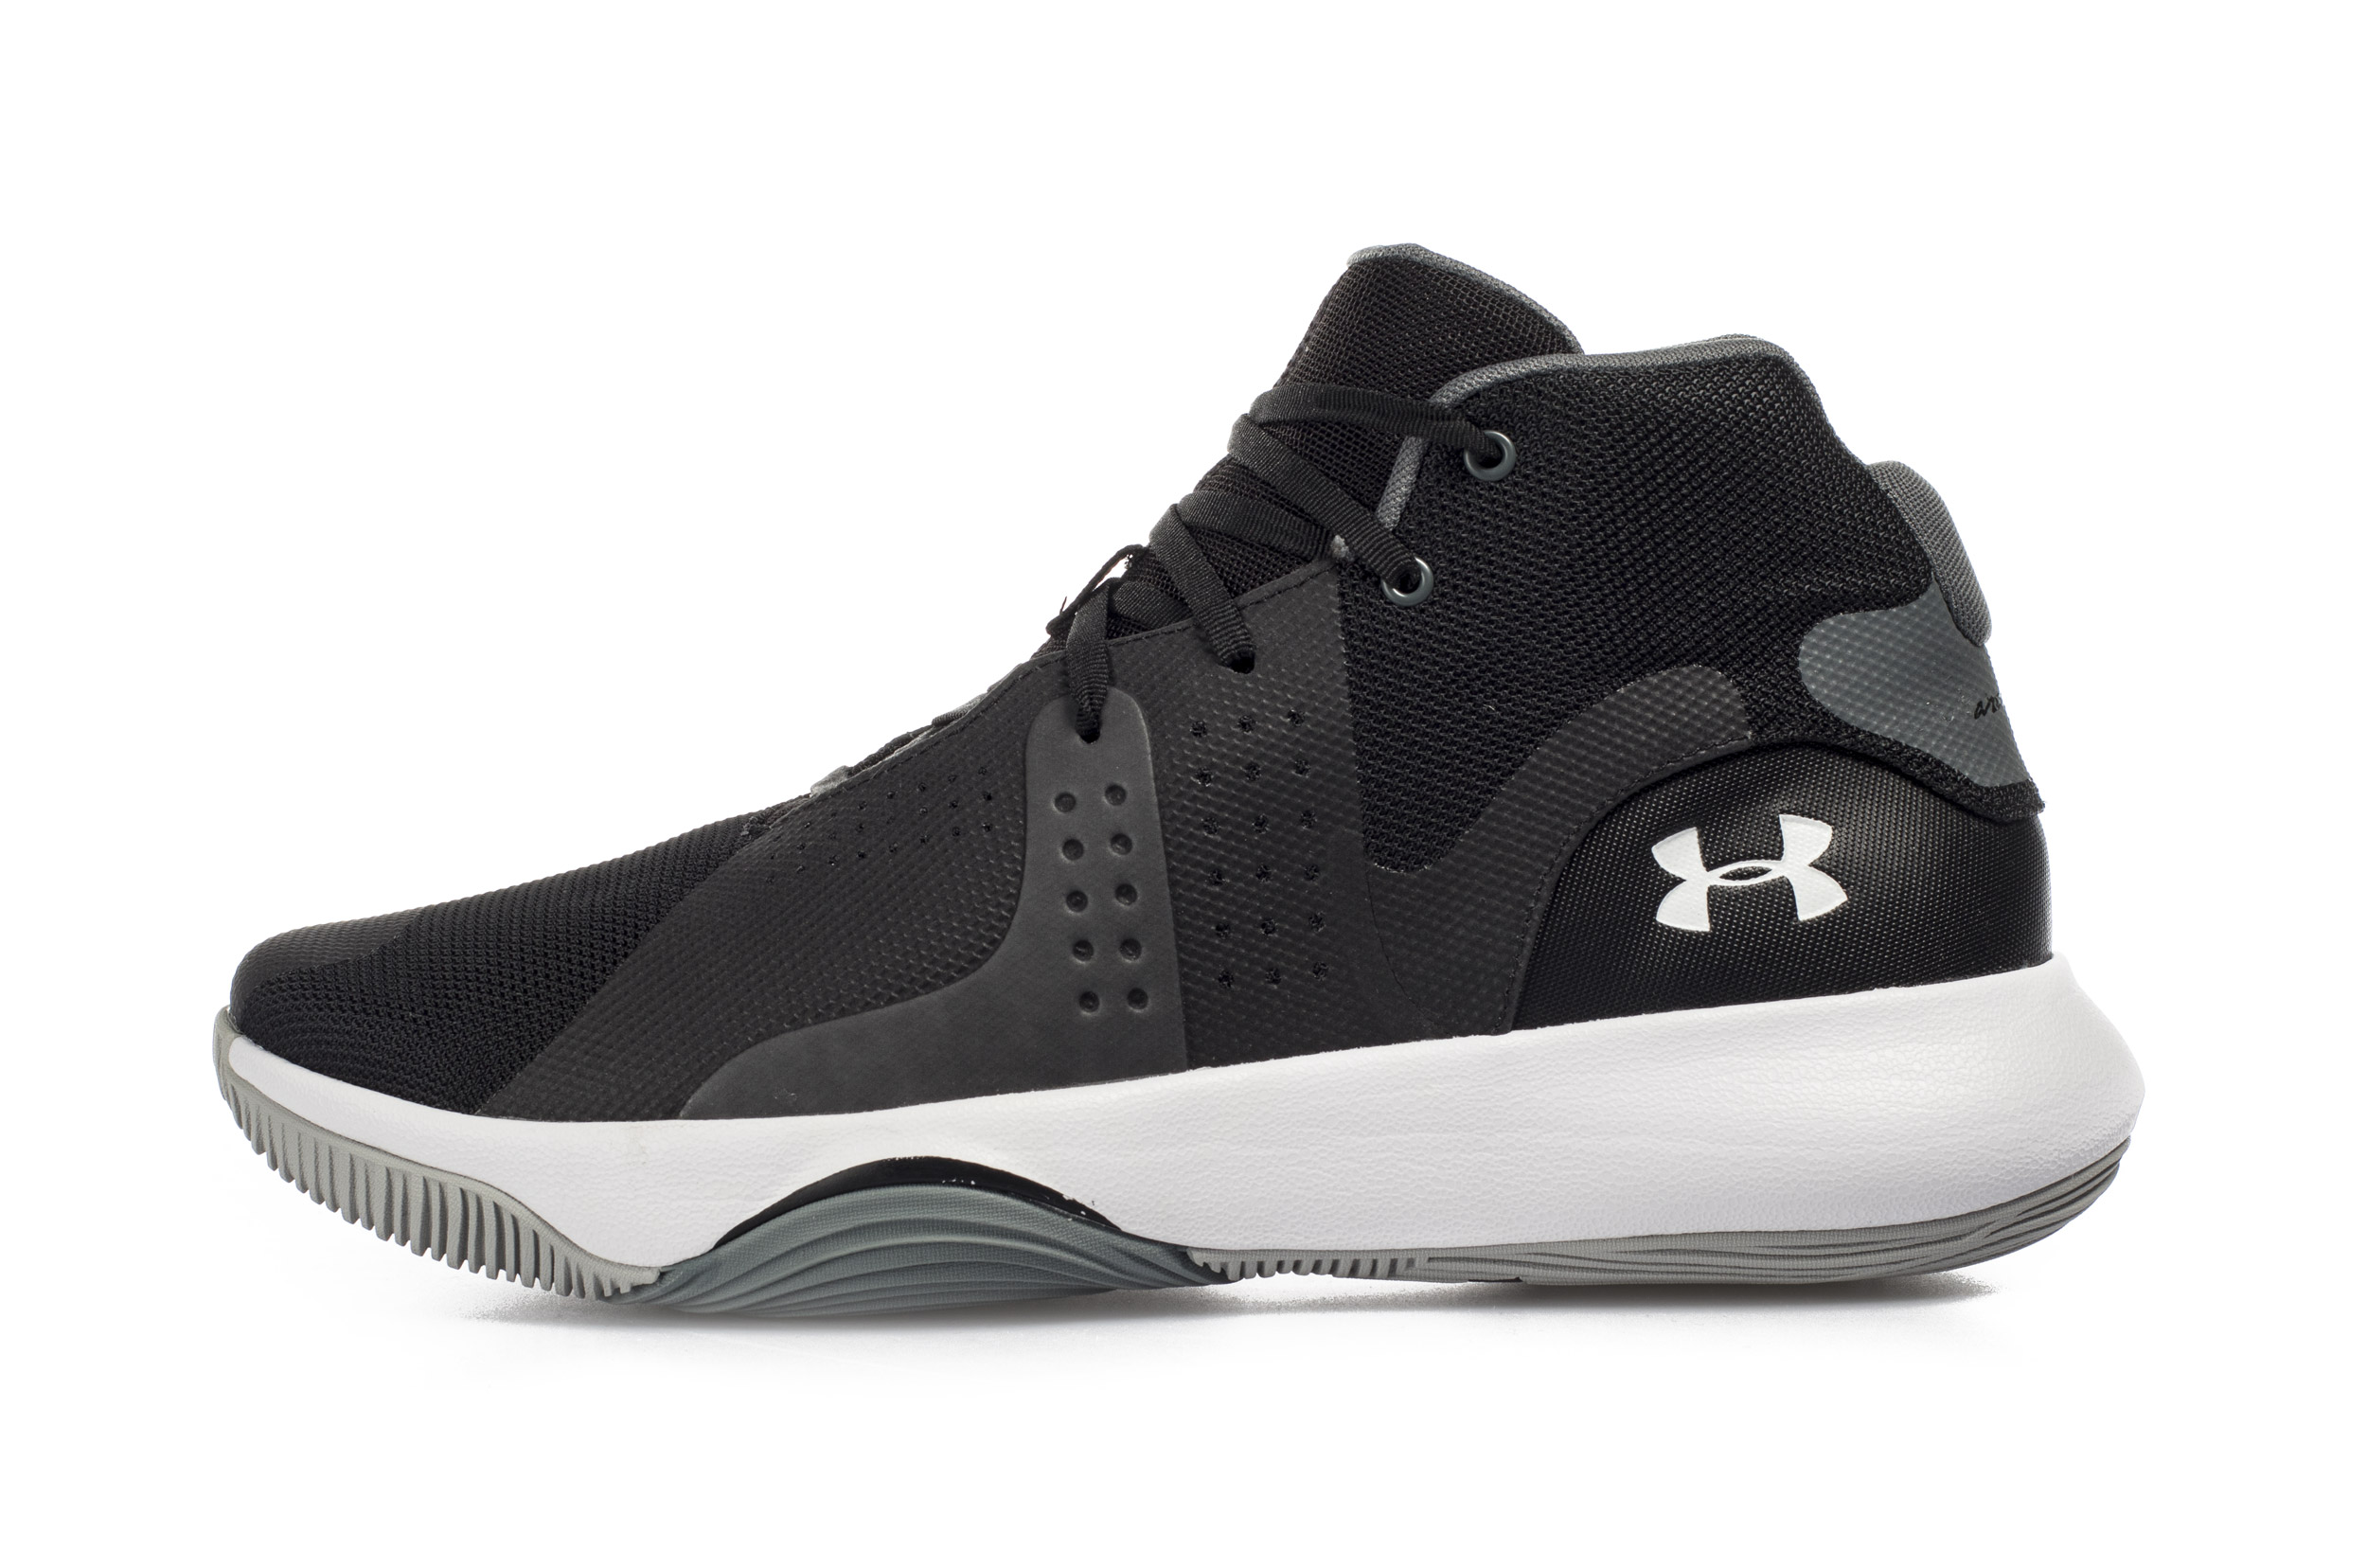 UNDER ARMOUR ANOMALY 3021266-004 Μαύρο